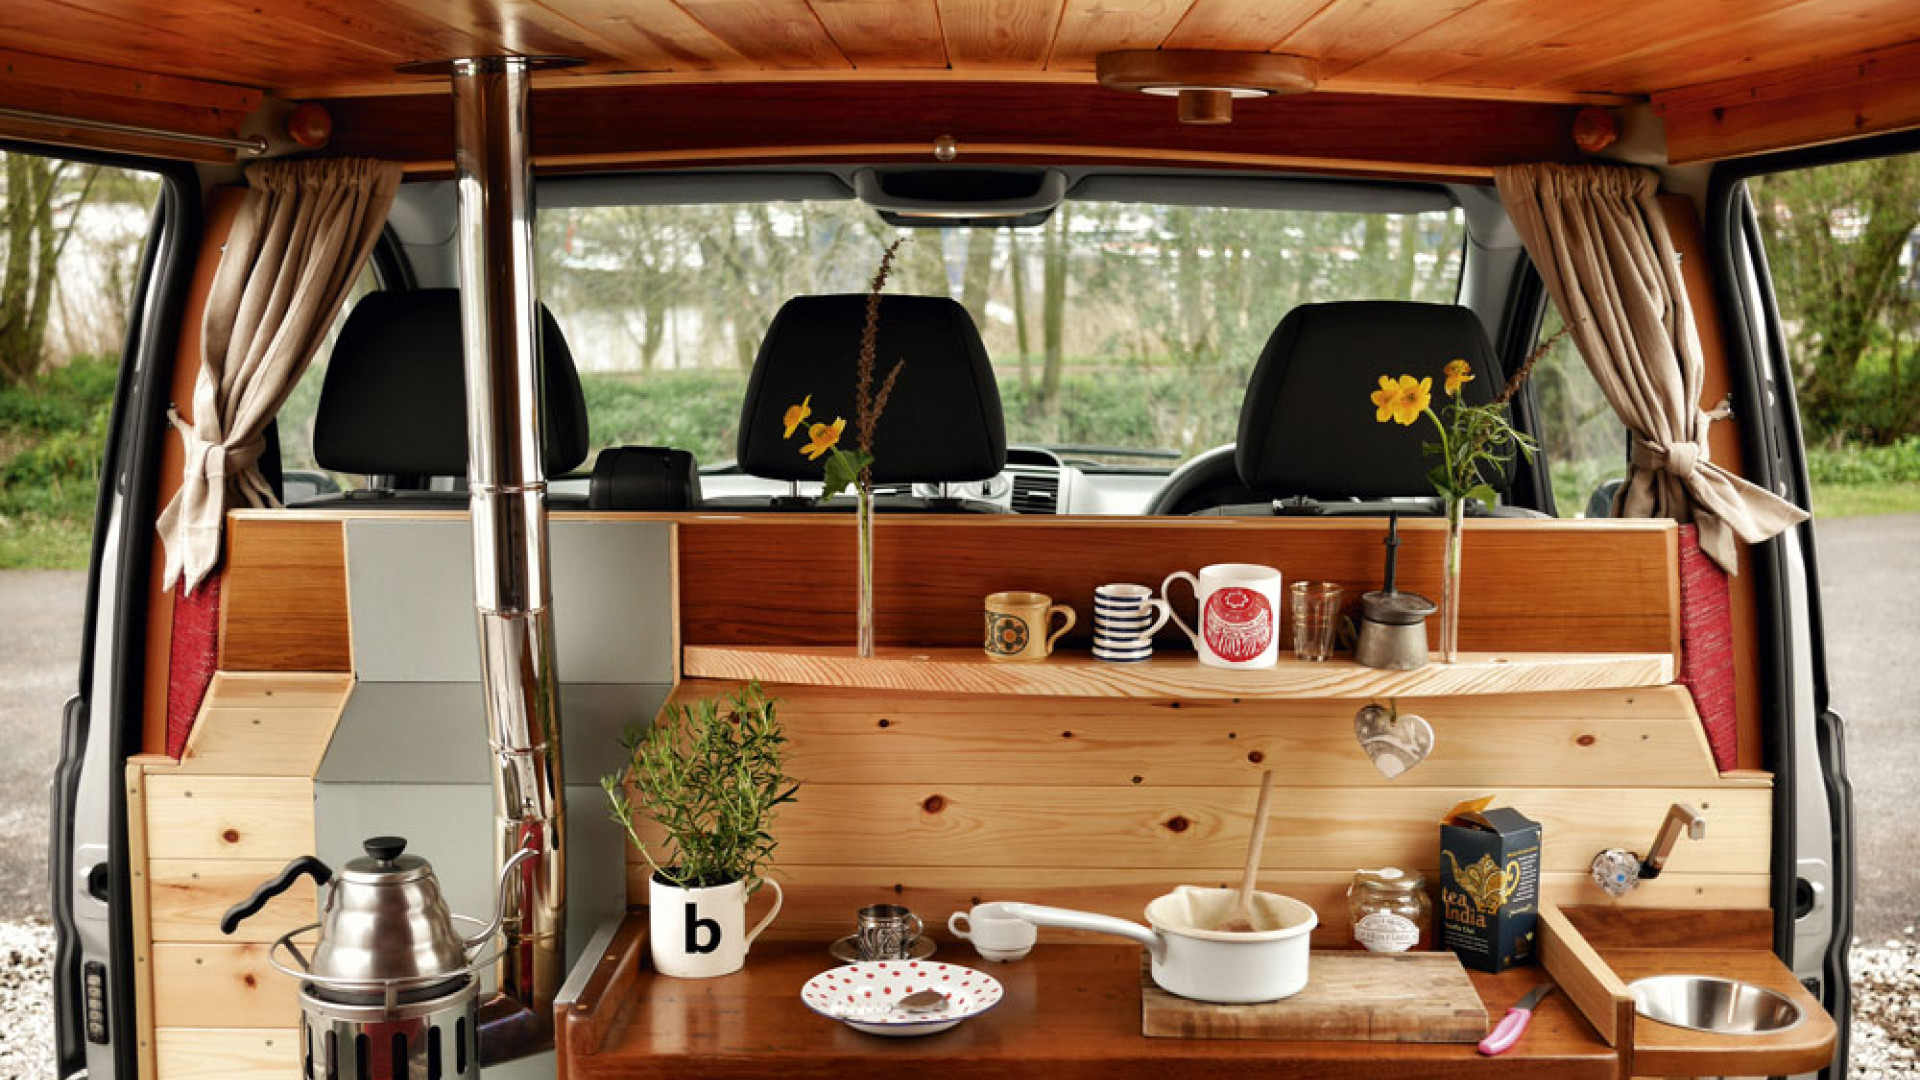 Converted camper van from Quirky Campers